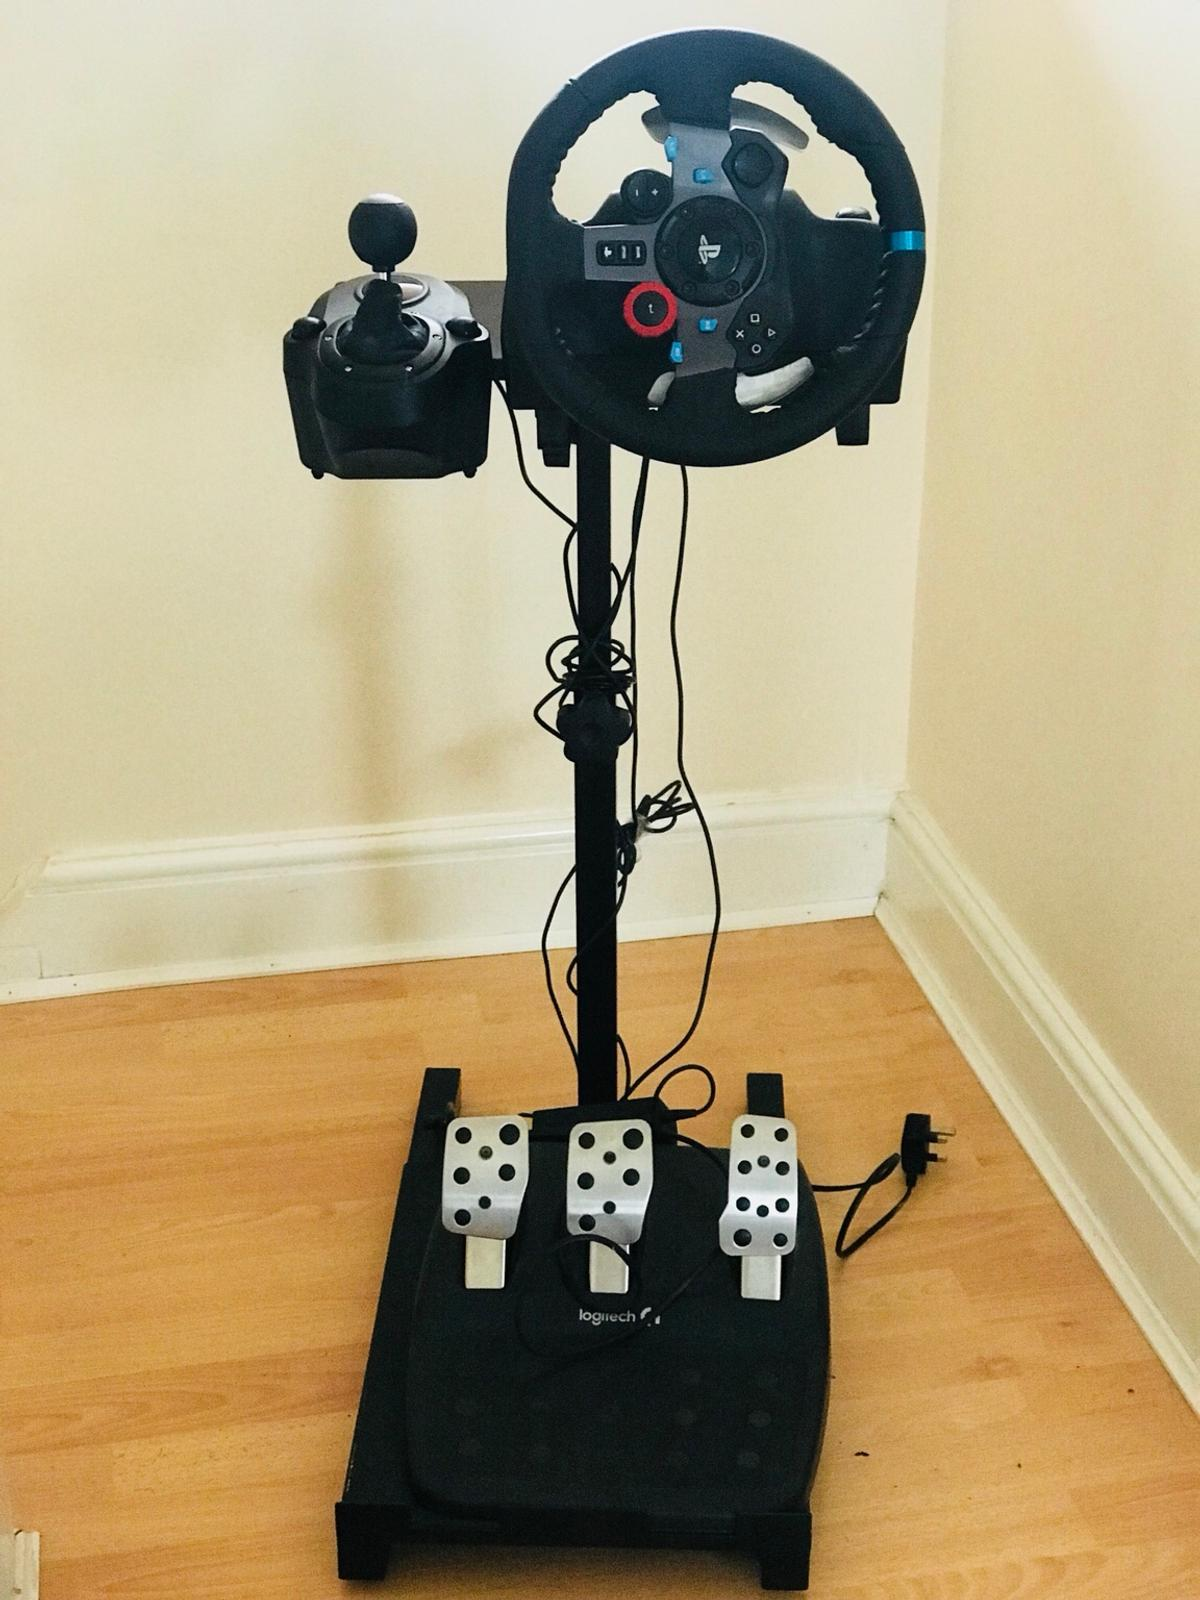 317ee613e60 Logitech G29 with Gear shift pedal and stand in EN2 Enfield for ...